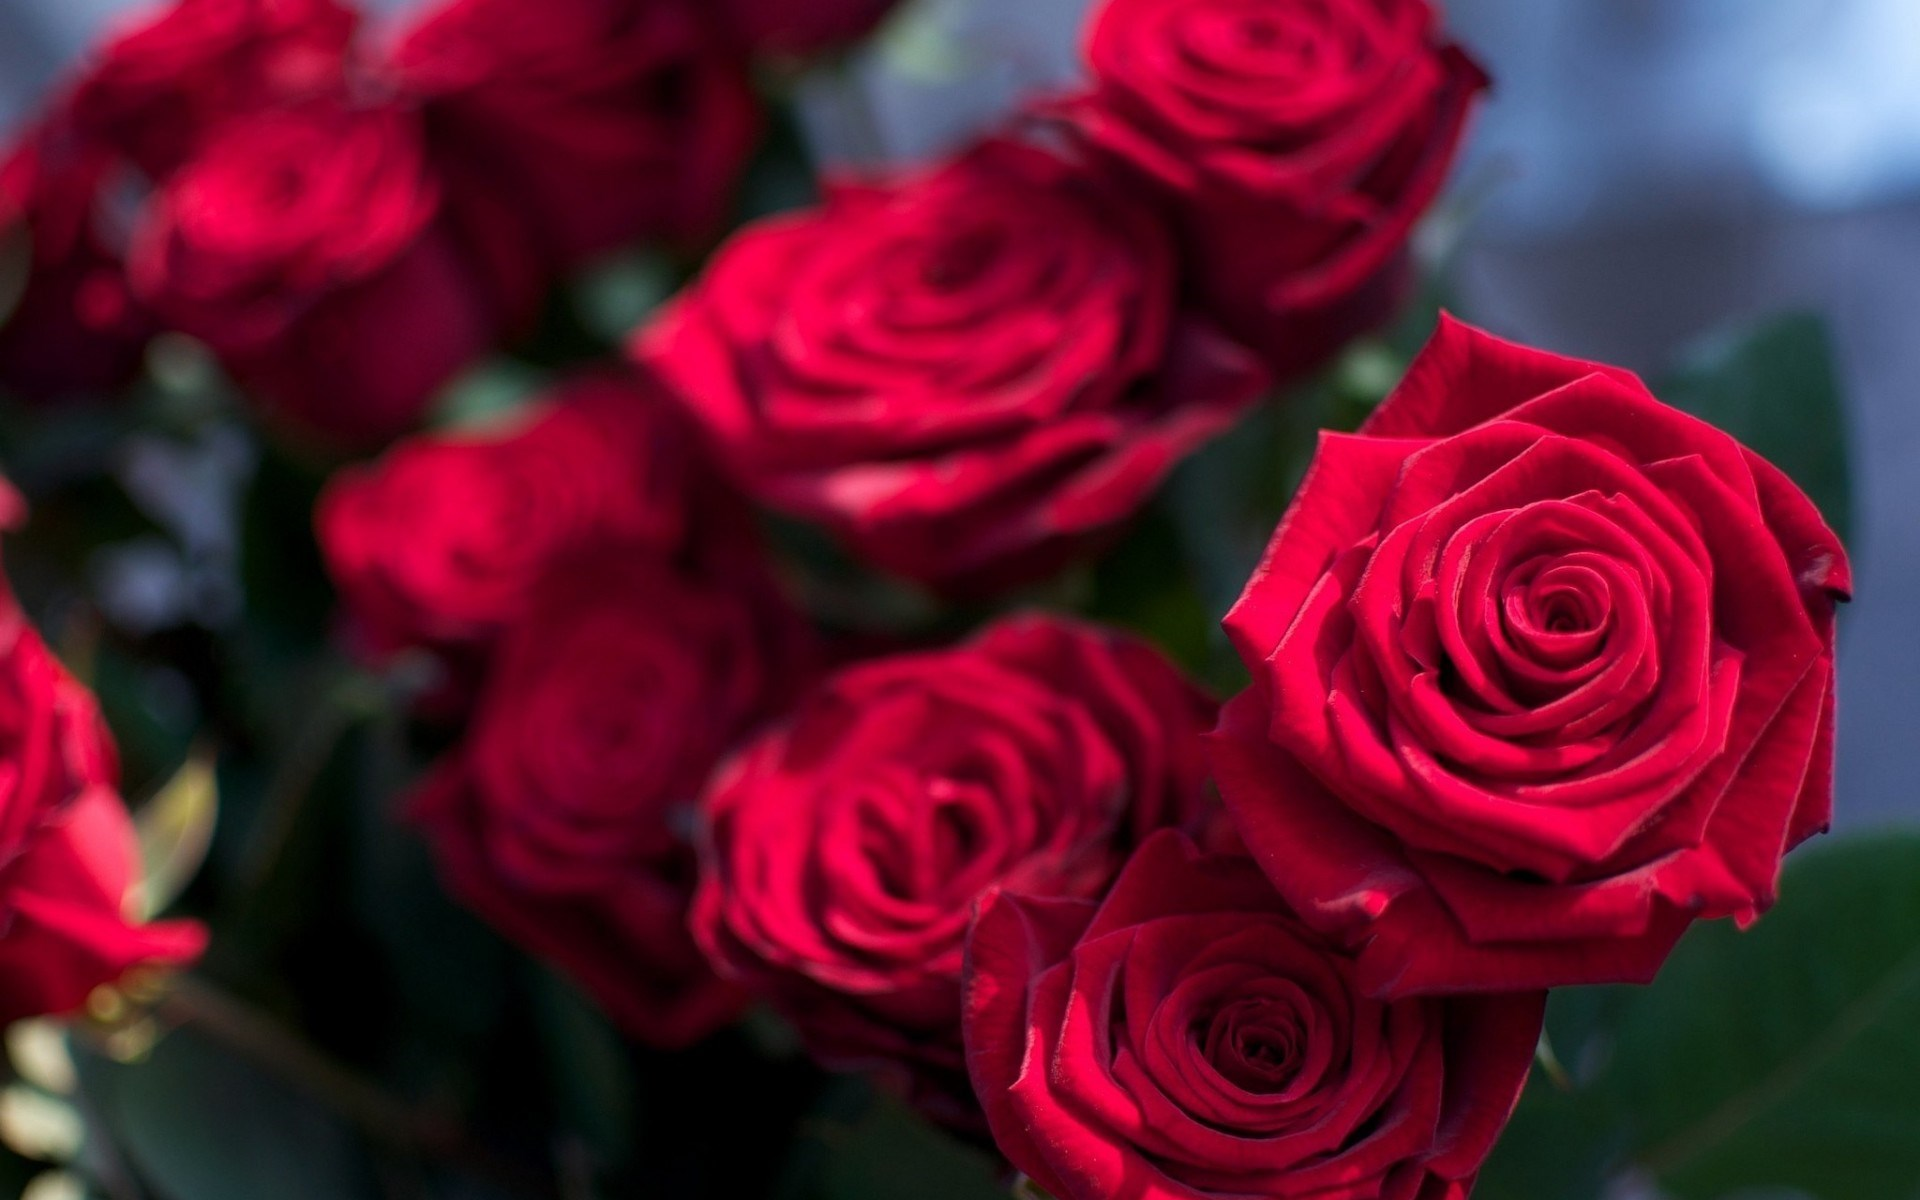 Red Roses Wallpaper Free Download Hd Desktop Wallpapers 4k Hd